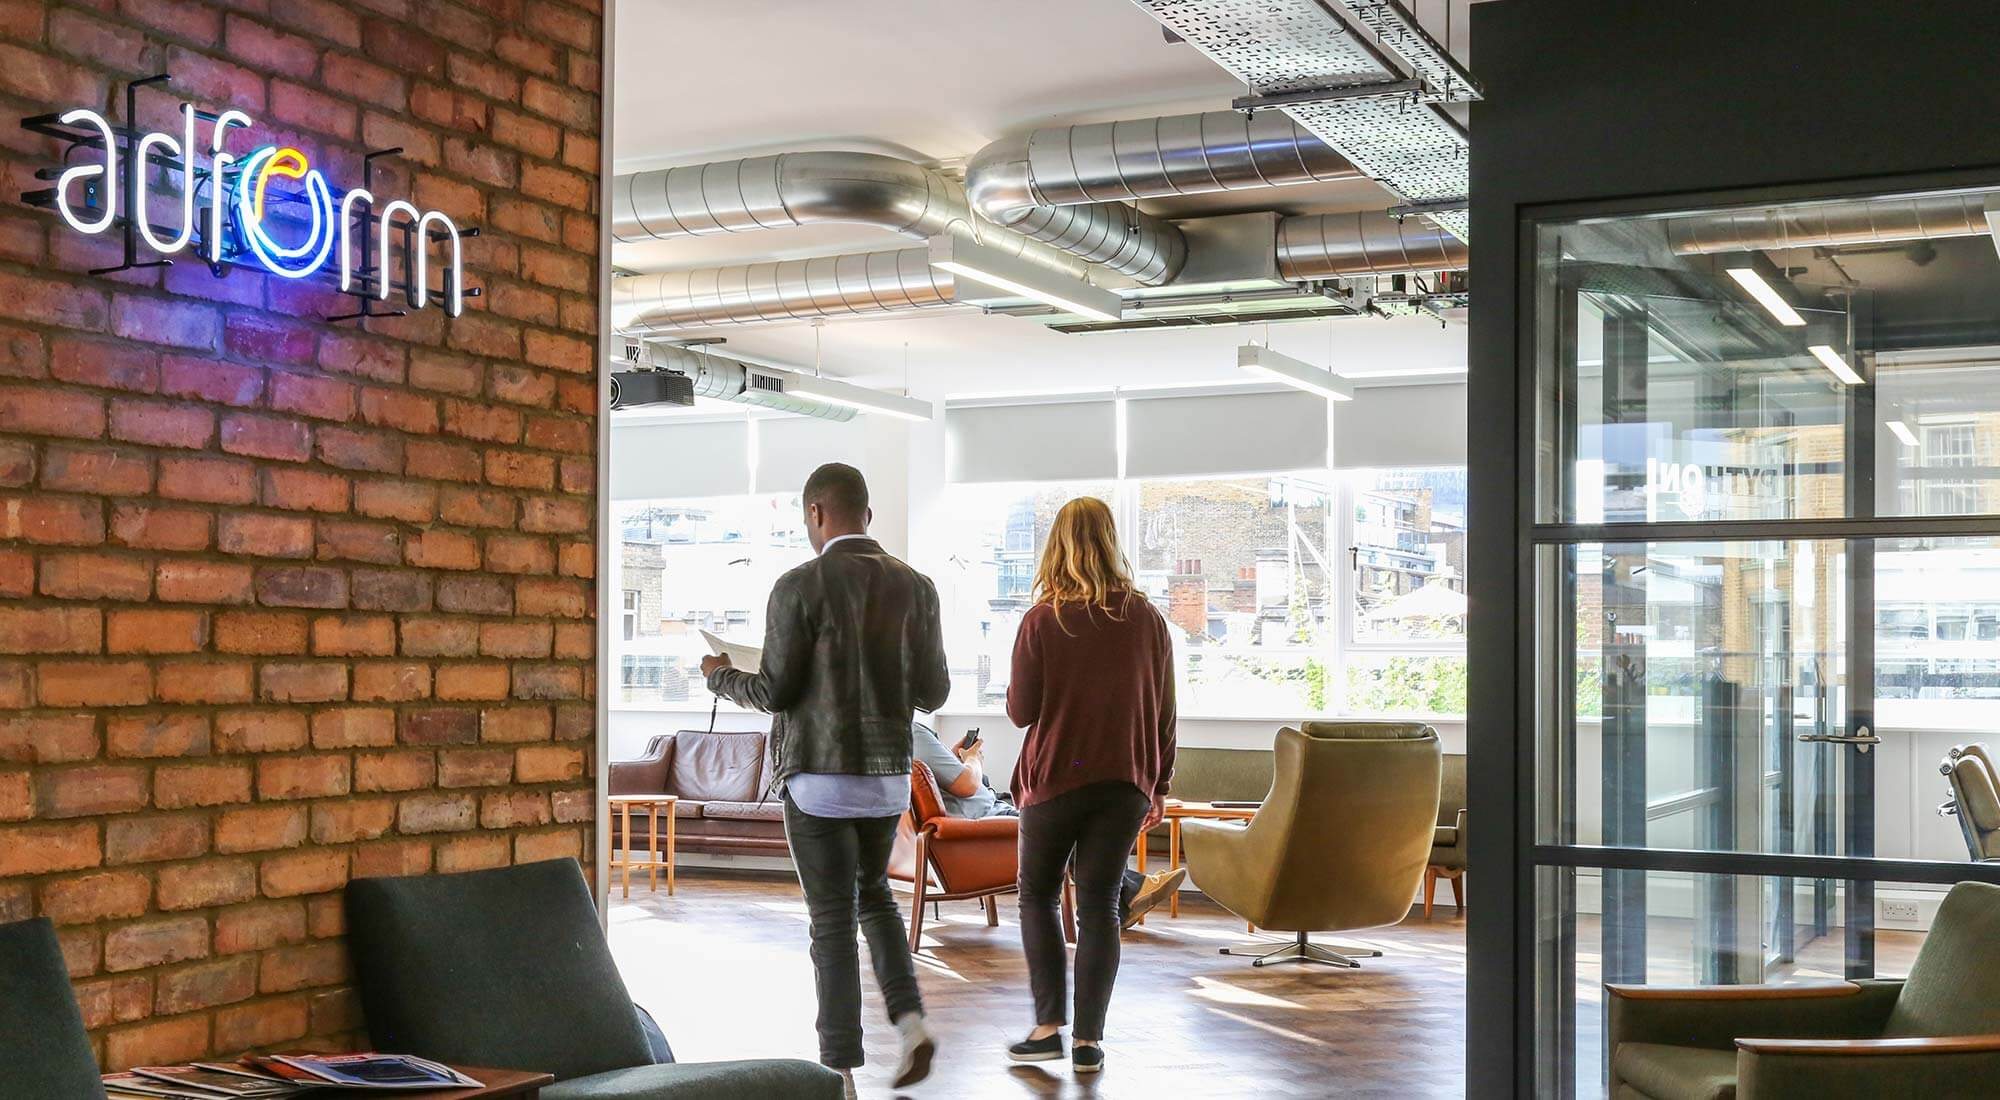 london office brick slip feature wall and midcentury design